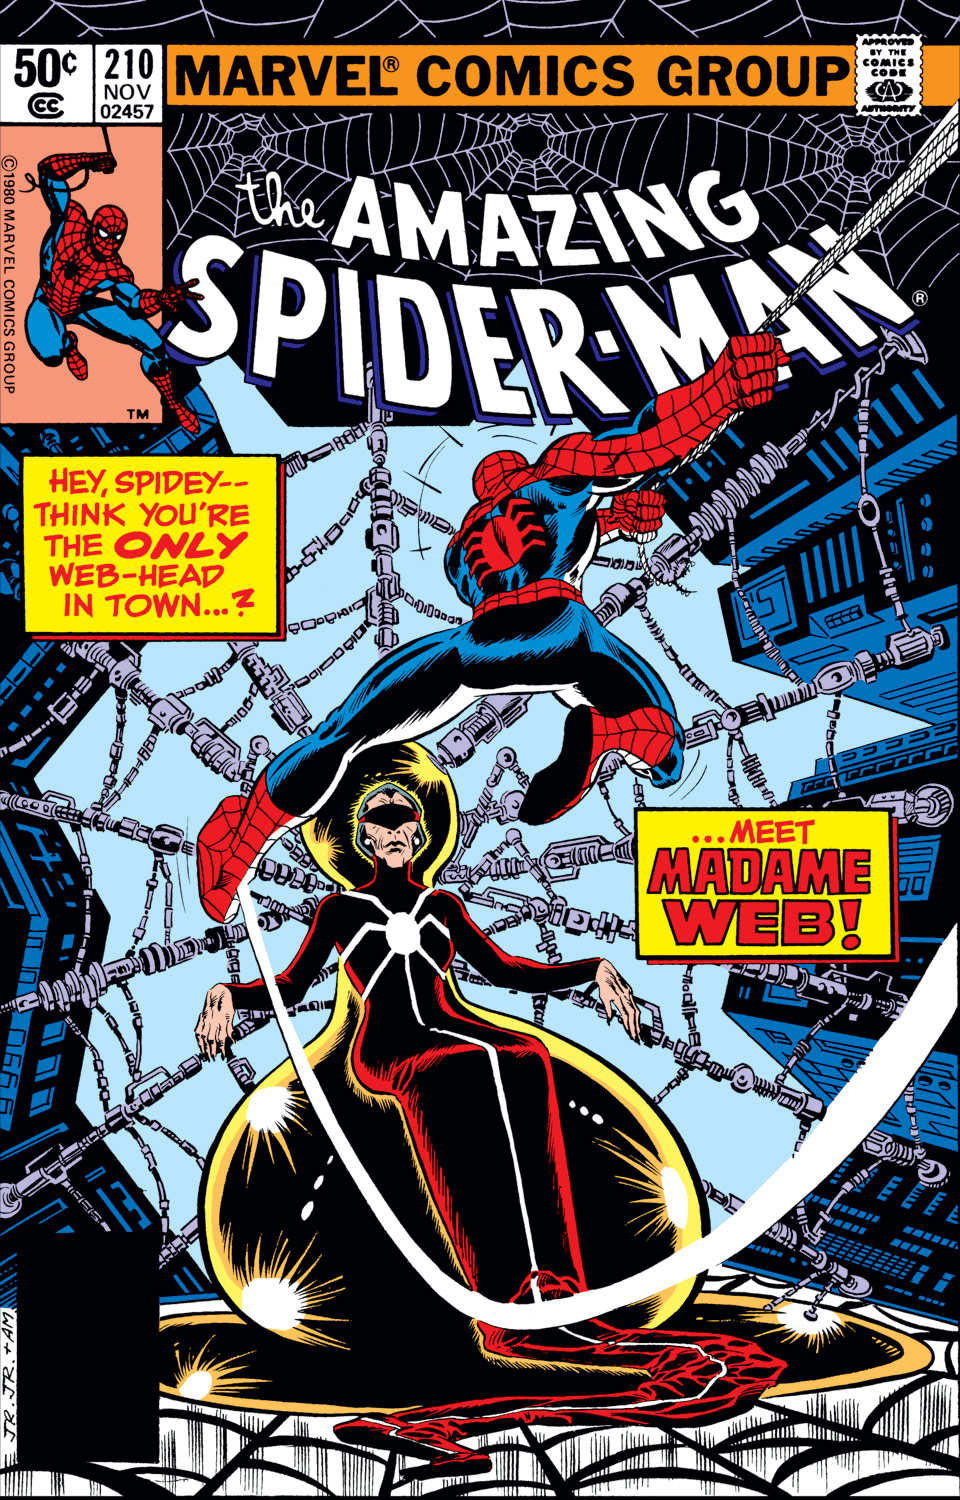 The Long Boxers - Amazing Spider-Man 210 Cover